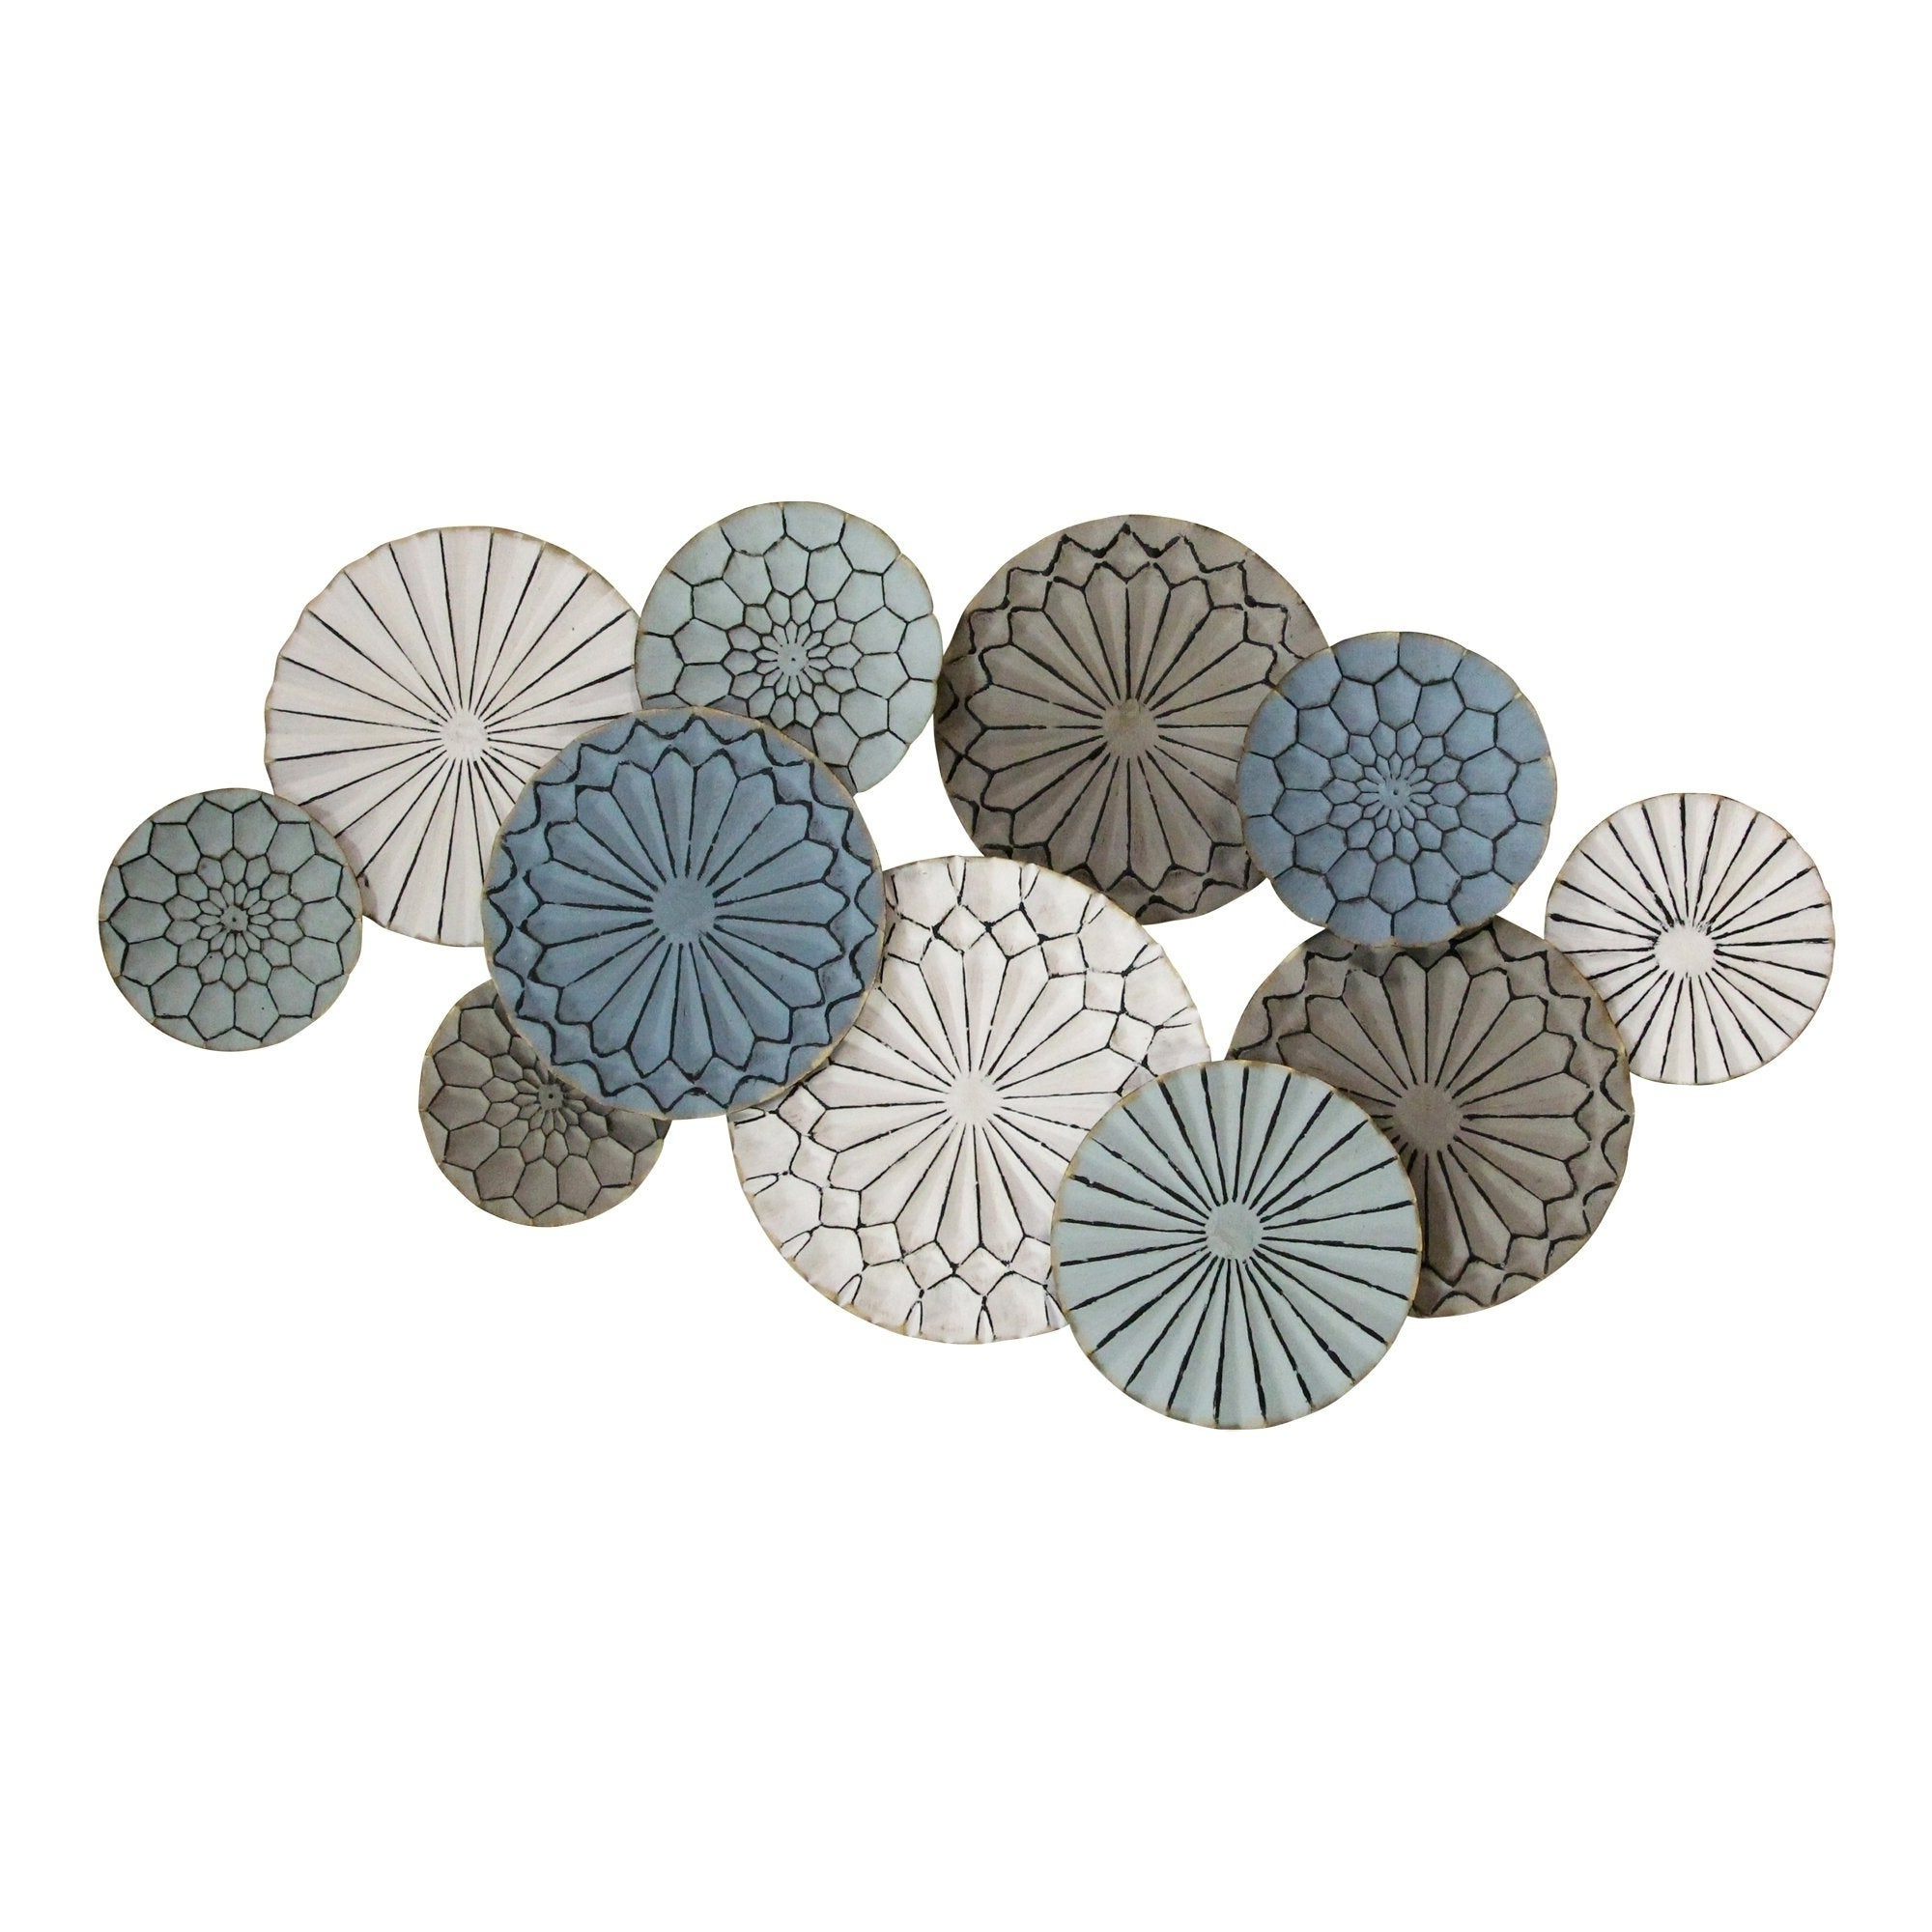 Multi Plates Wall Décor By Stratton Home Decor Inside Most Recent Stratton Home Decor Caroline Metal Plates Statement Wall Décor (View 14 of 20)